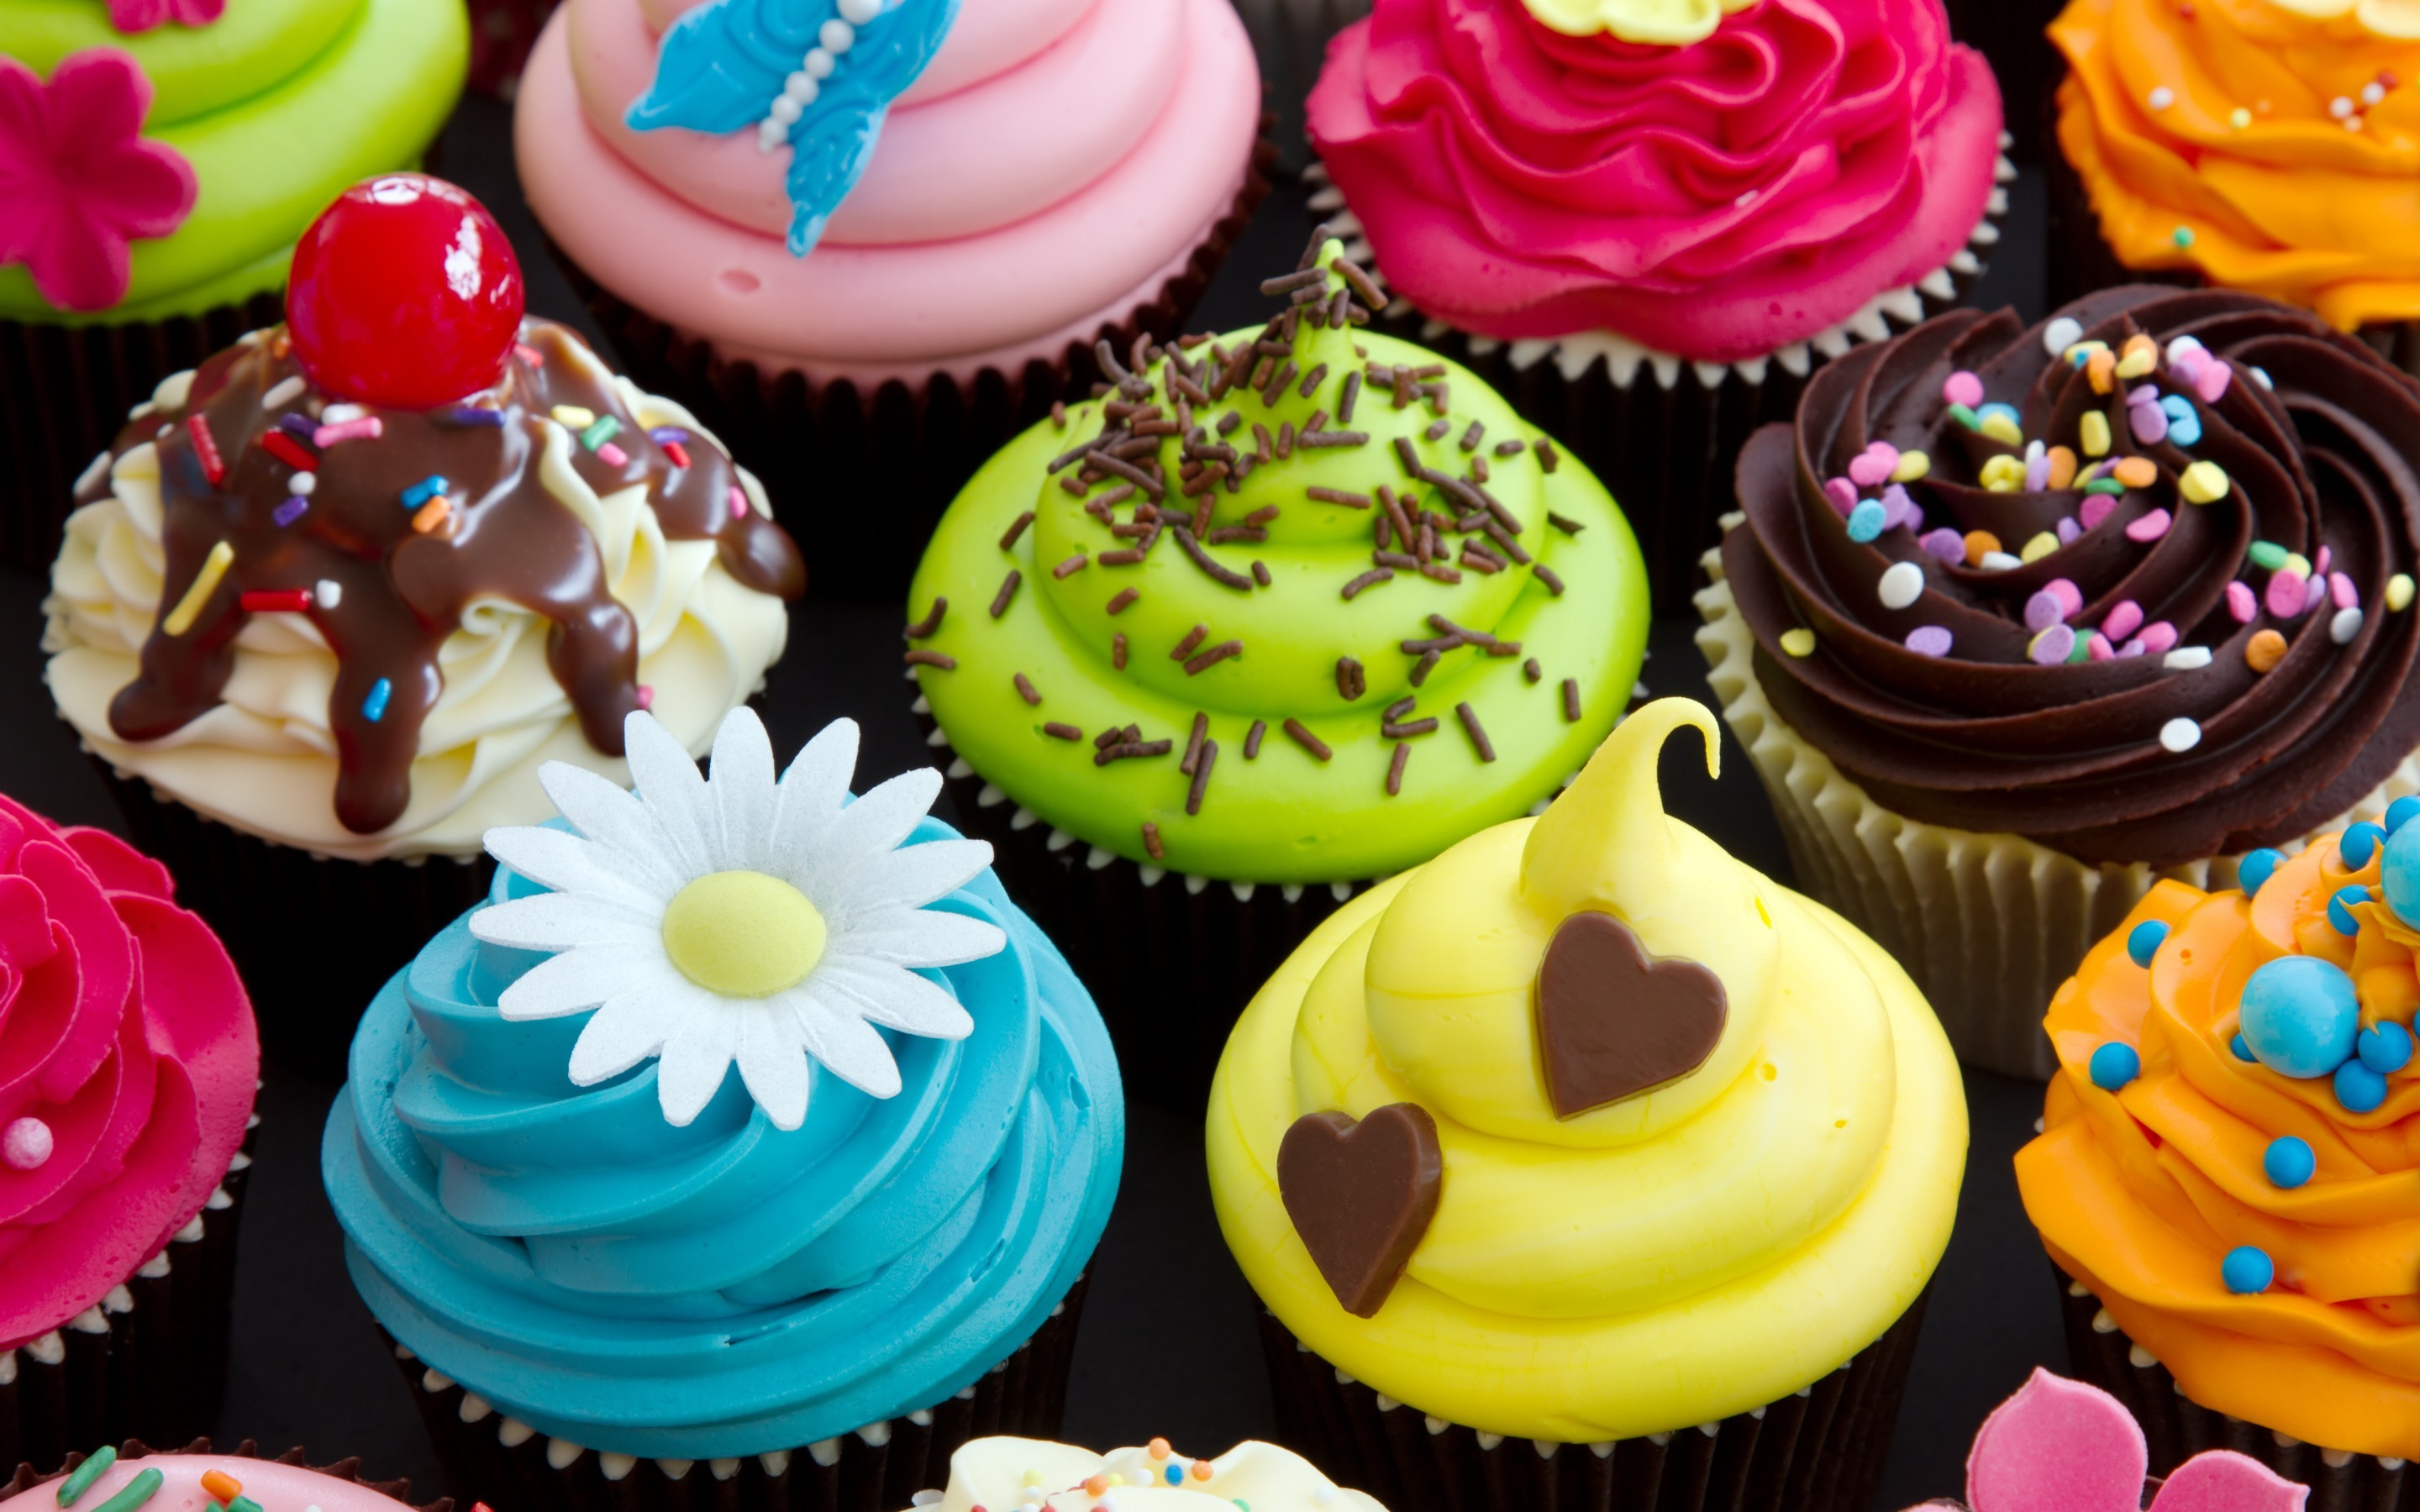 Res: 2880x1800, 153 Cupcake HD Wallpapers   Backgrounds - Wallpaper Abyss